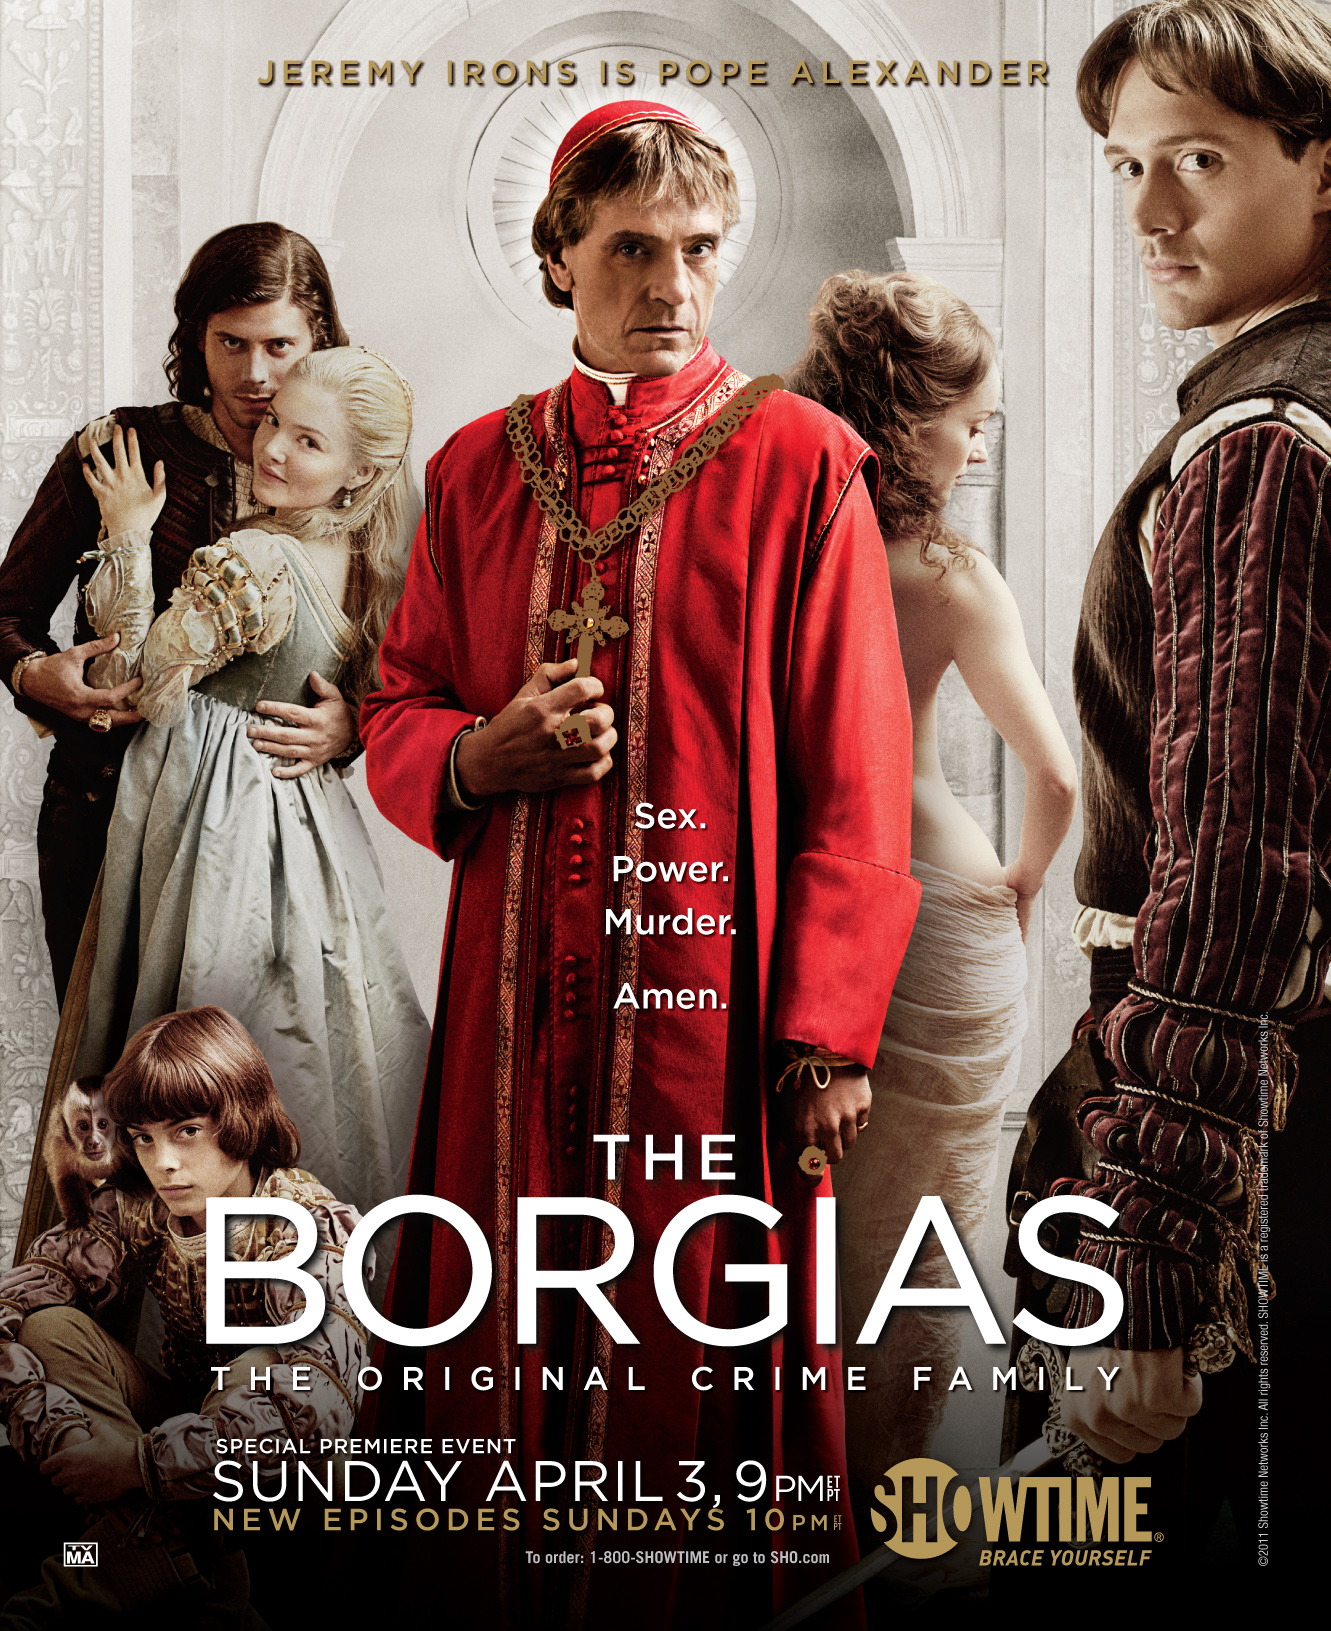 The Borgias (2011 series)